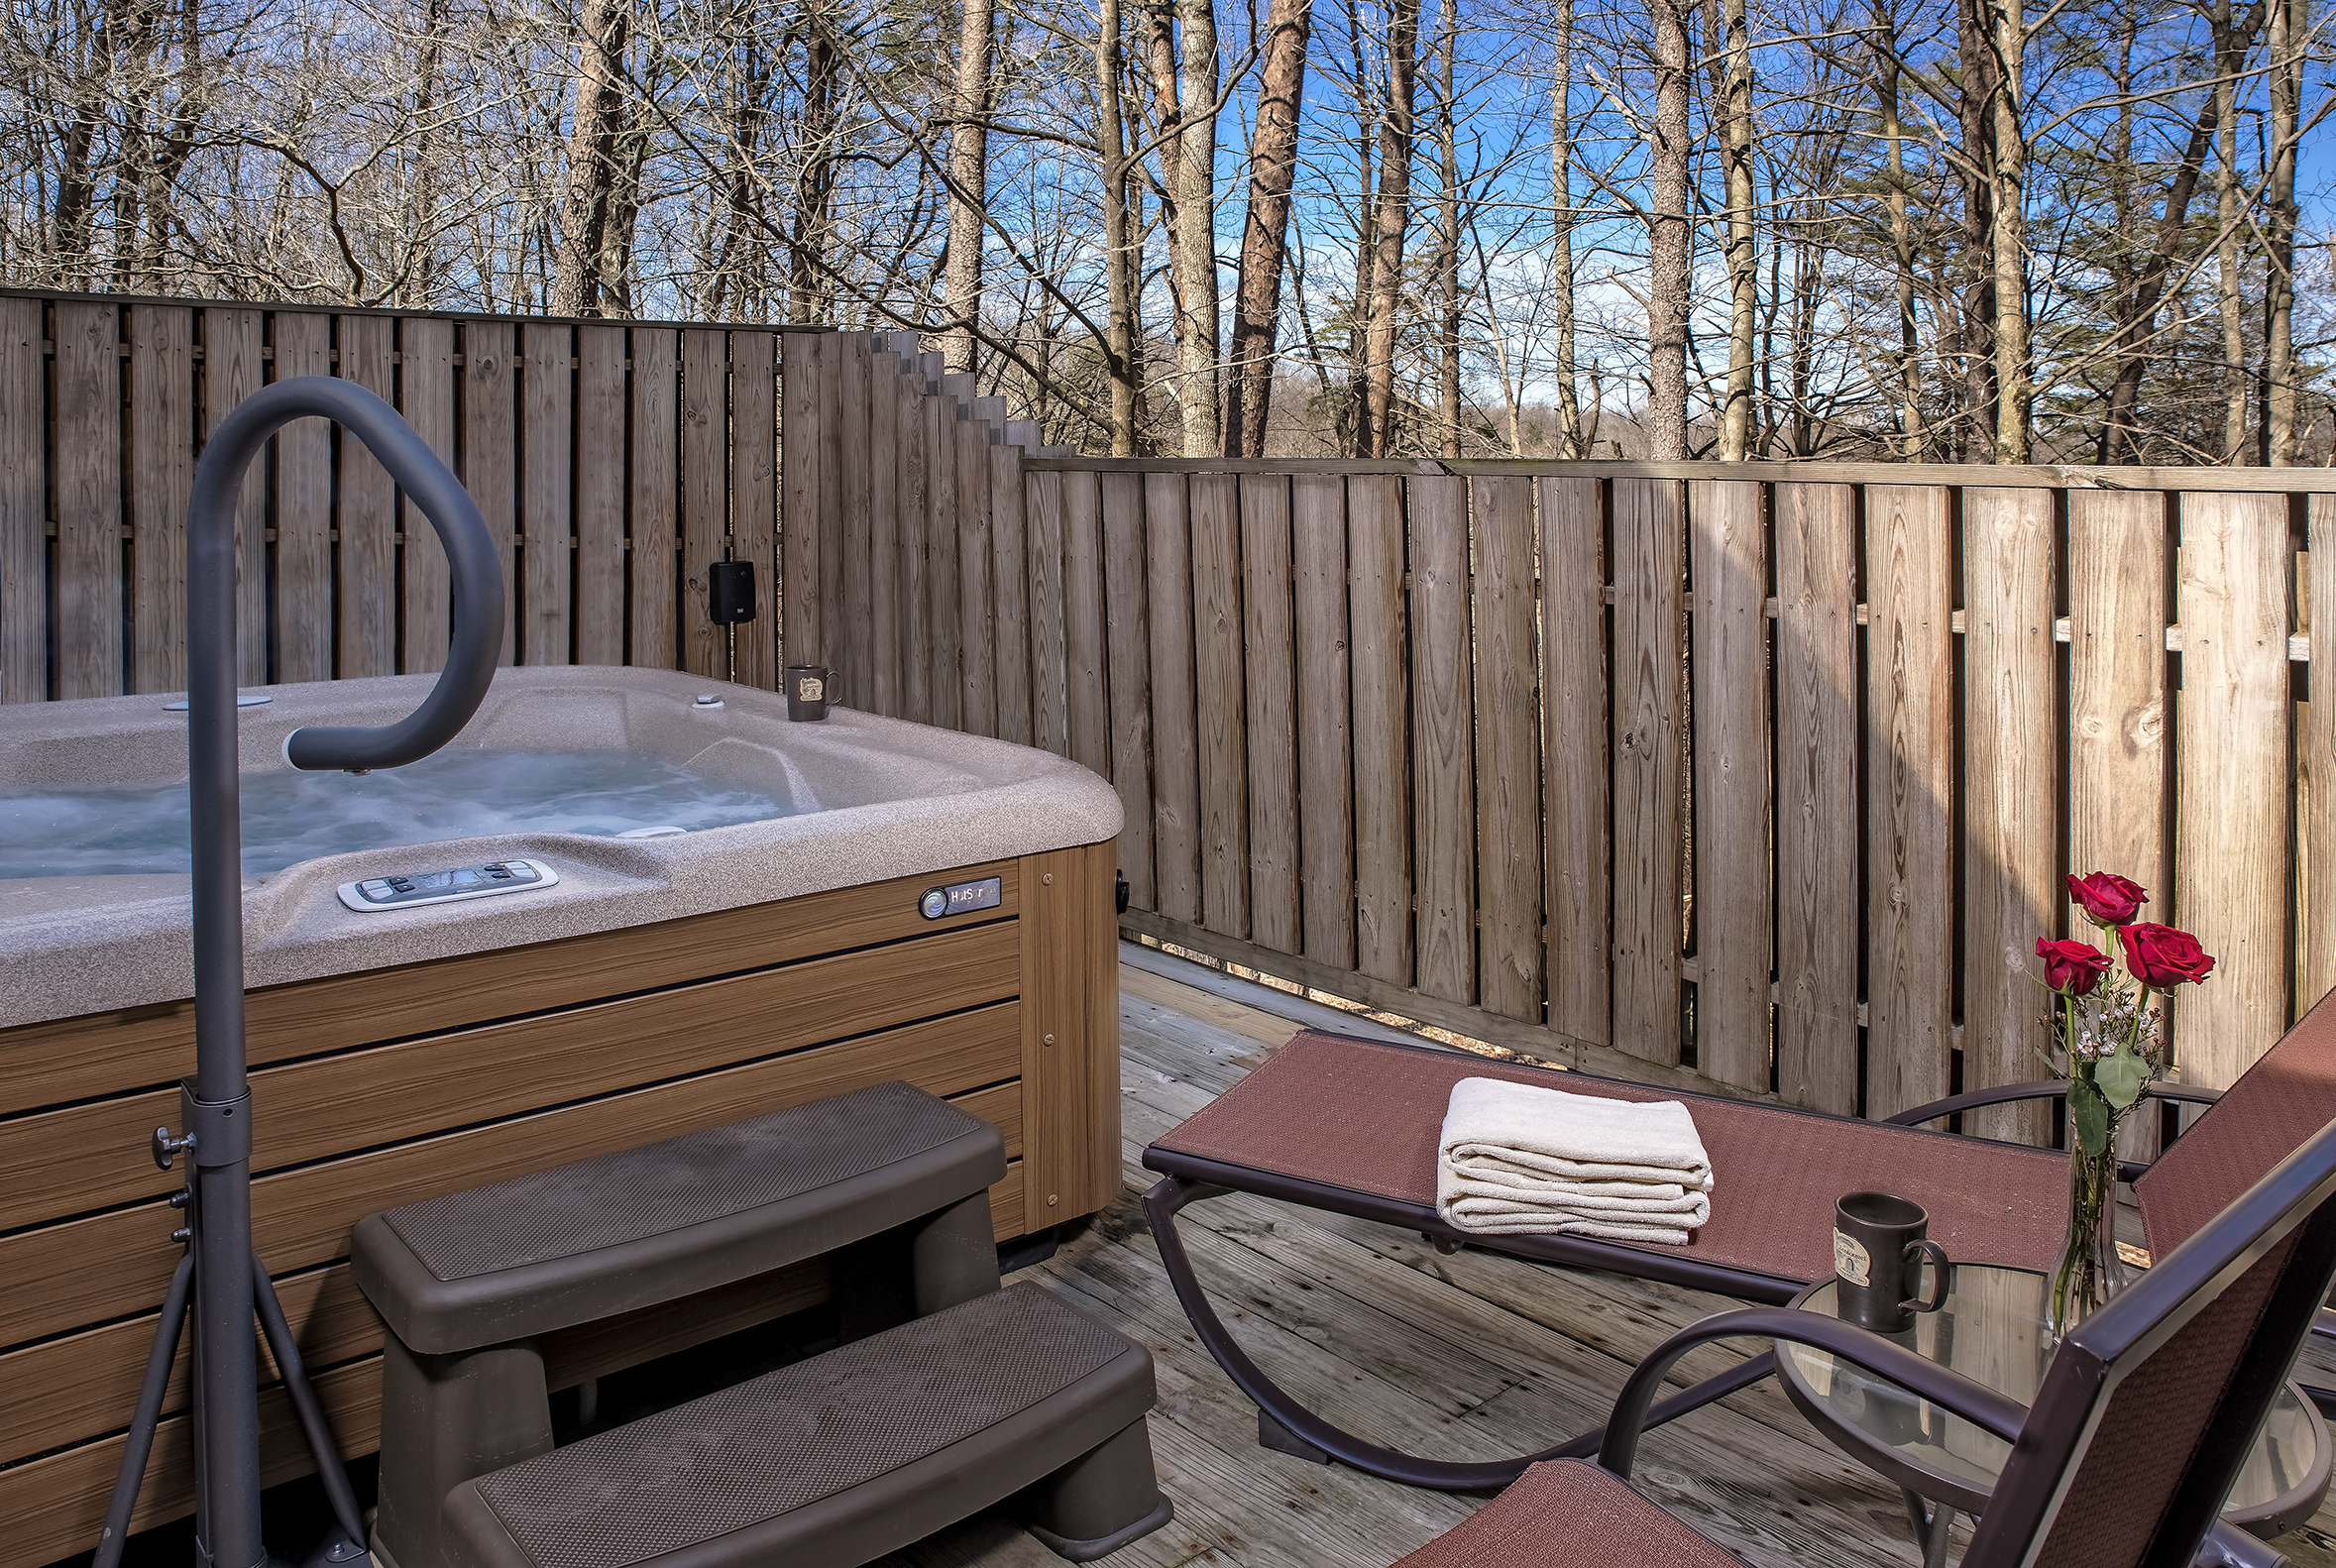 Private Hot Tubs - Quite possibly the most romantic spot!